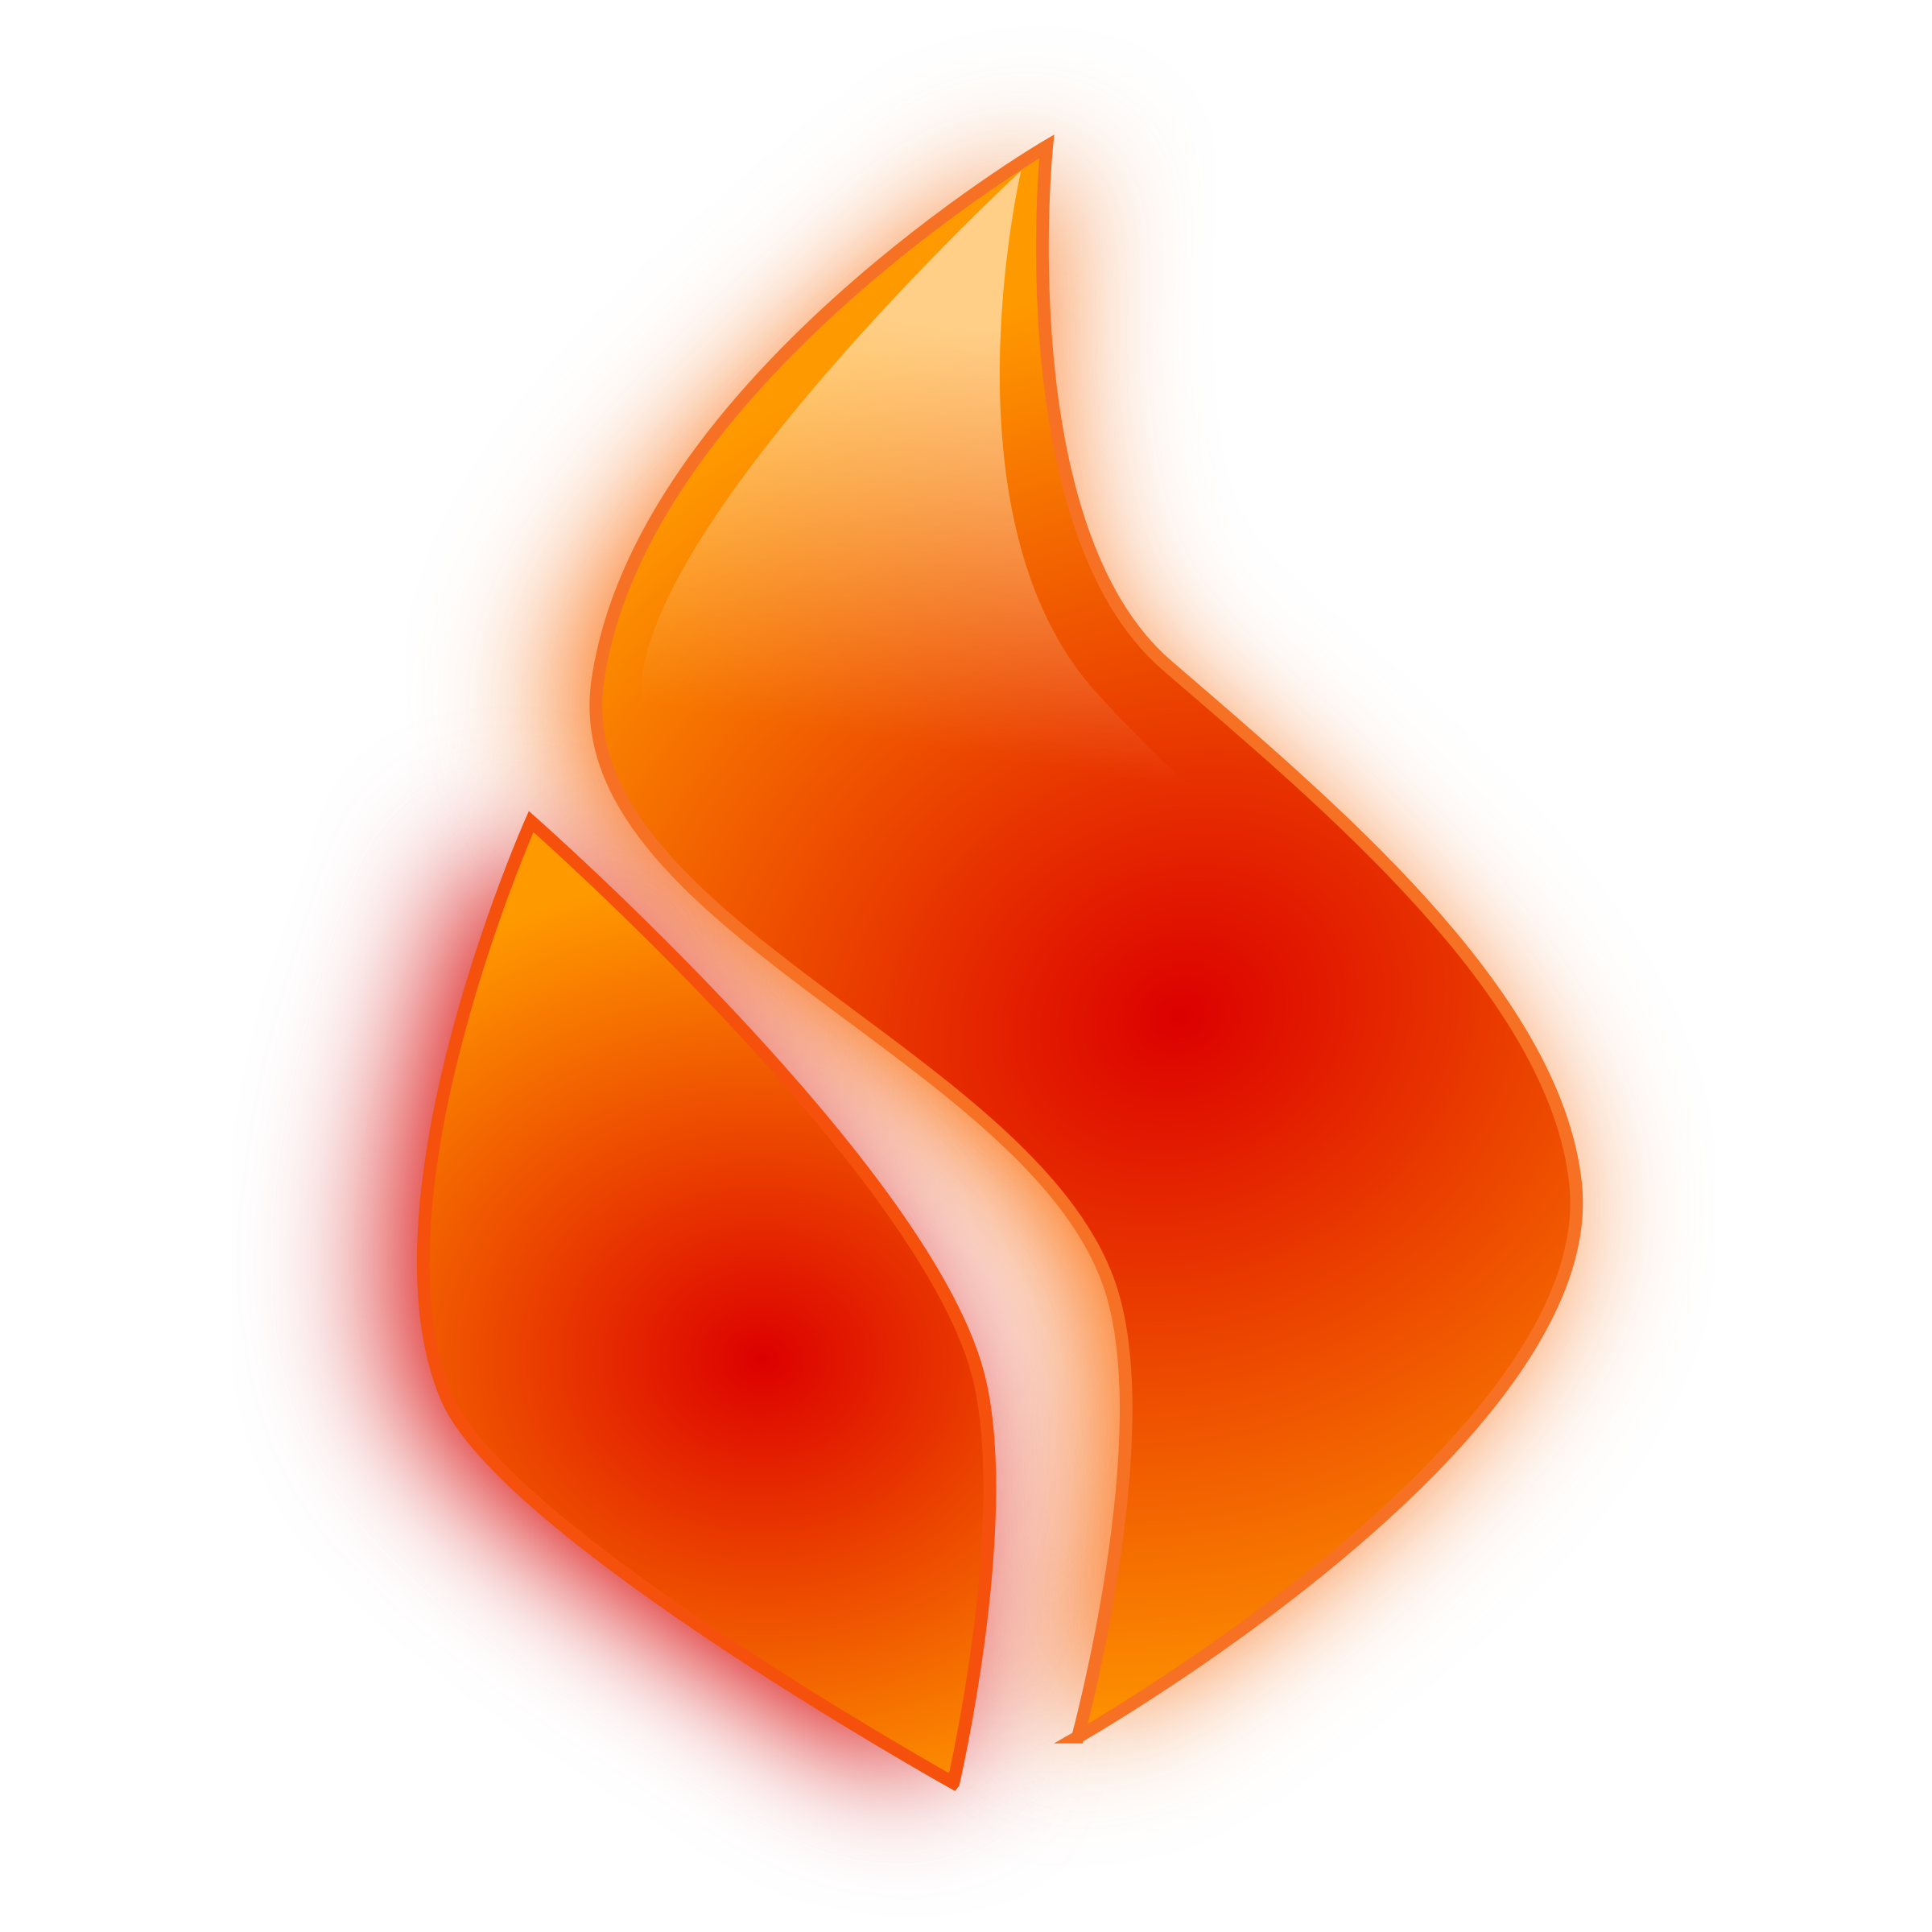 Flame free collection download. Heat clipart fuego